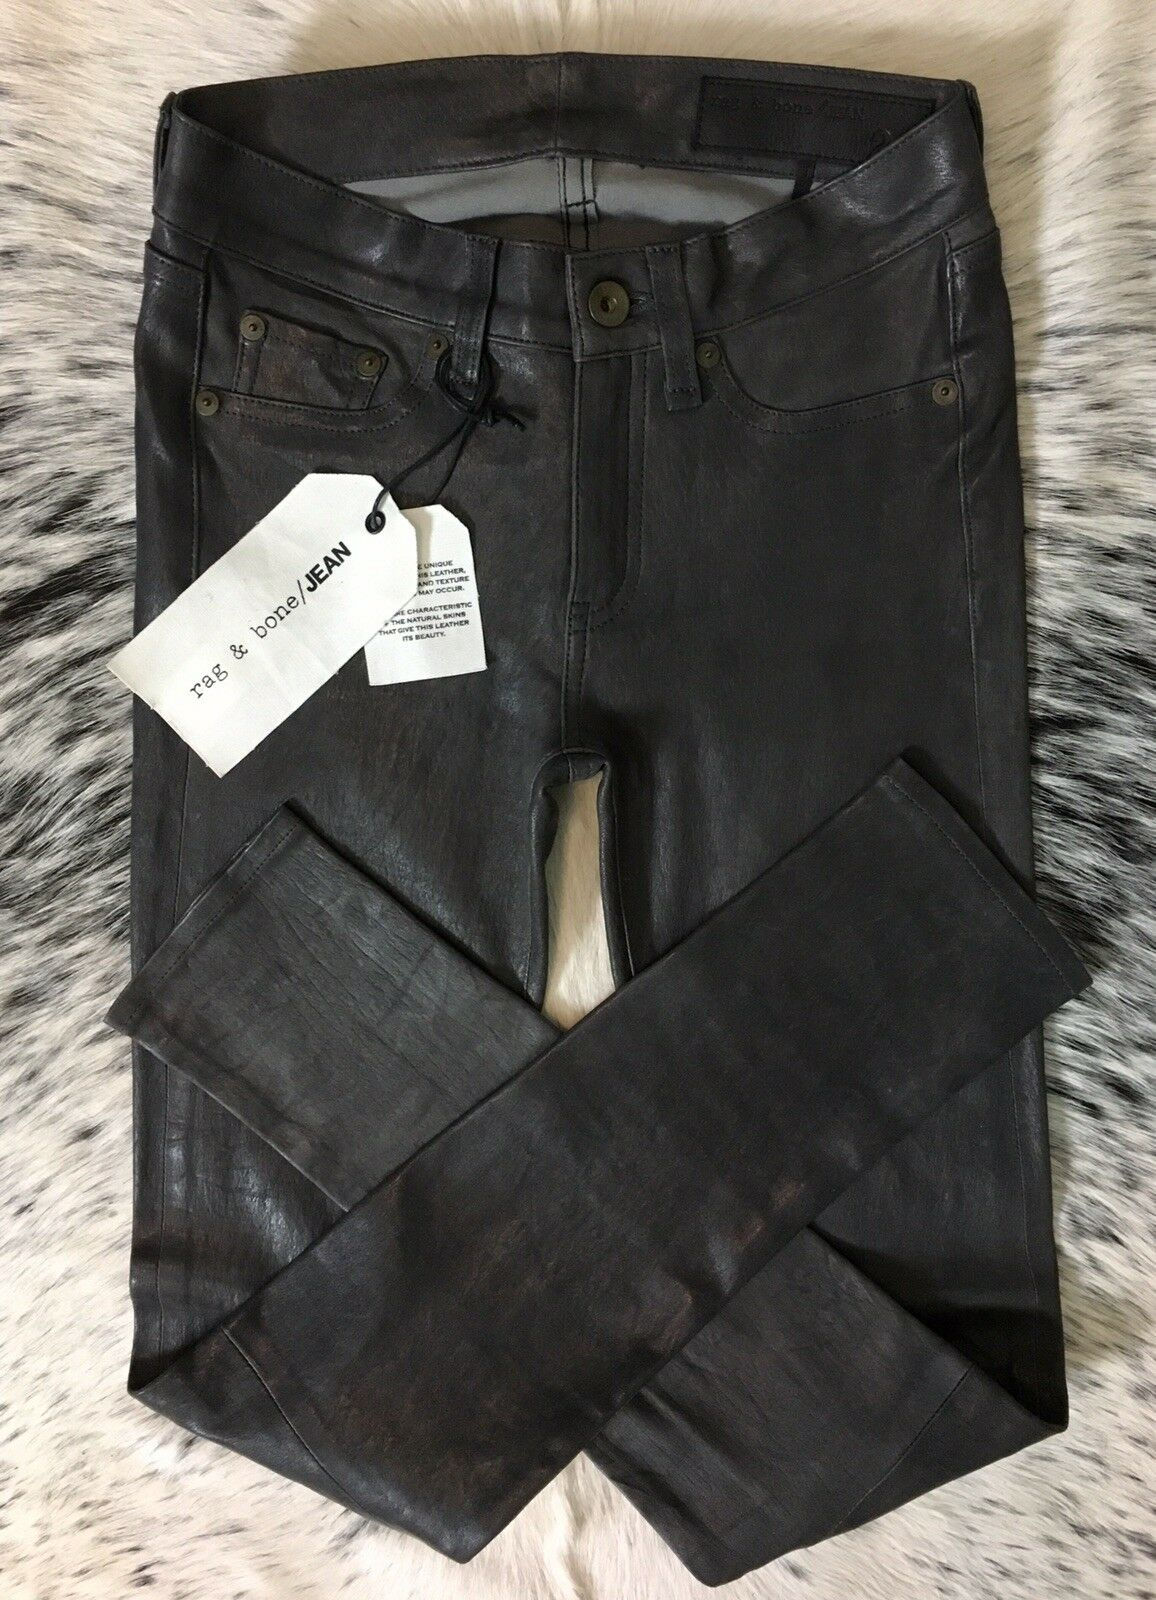 1000 RAG & BONE  THE LEATHER SKINNY  SZ 24 WASHED CHARCOAL NEW SEASON